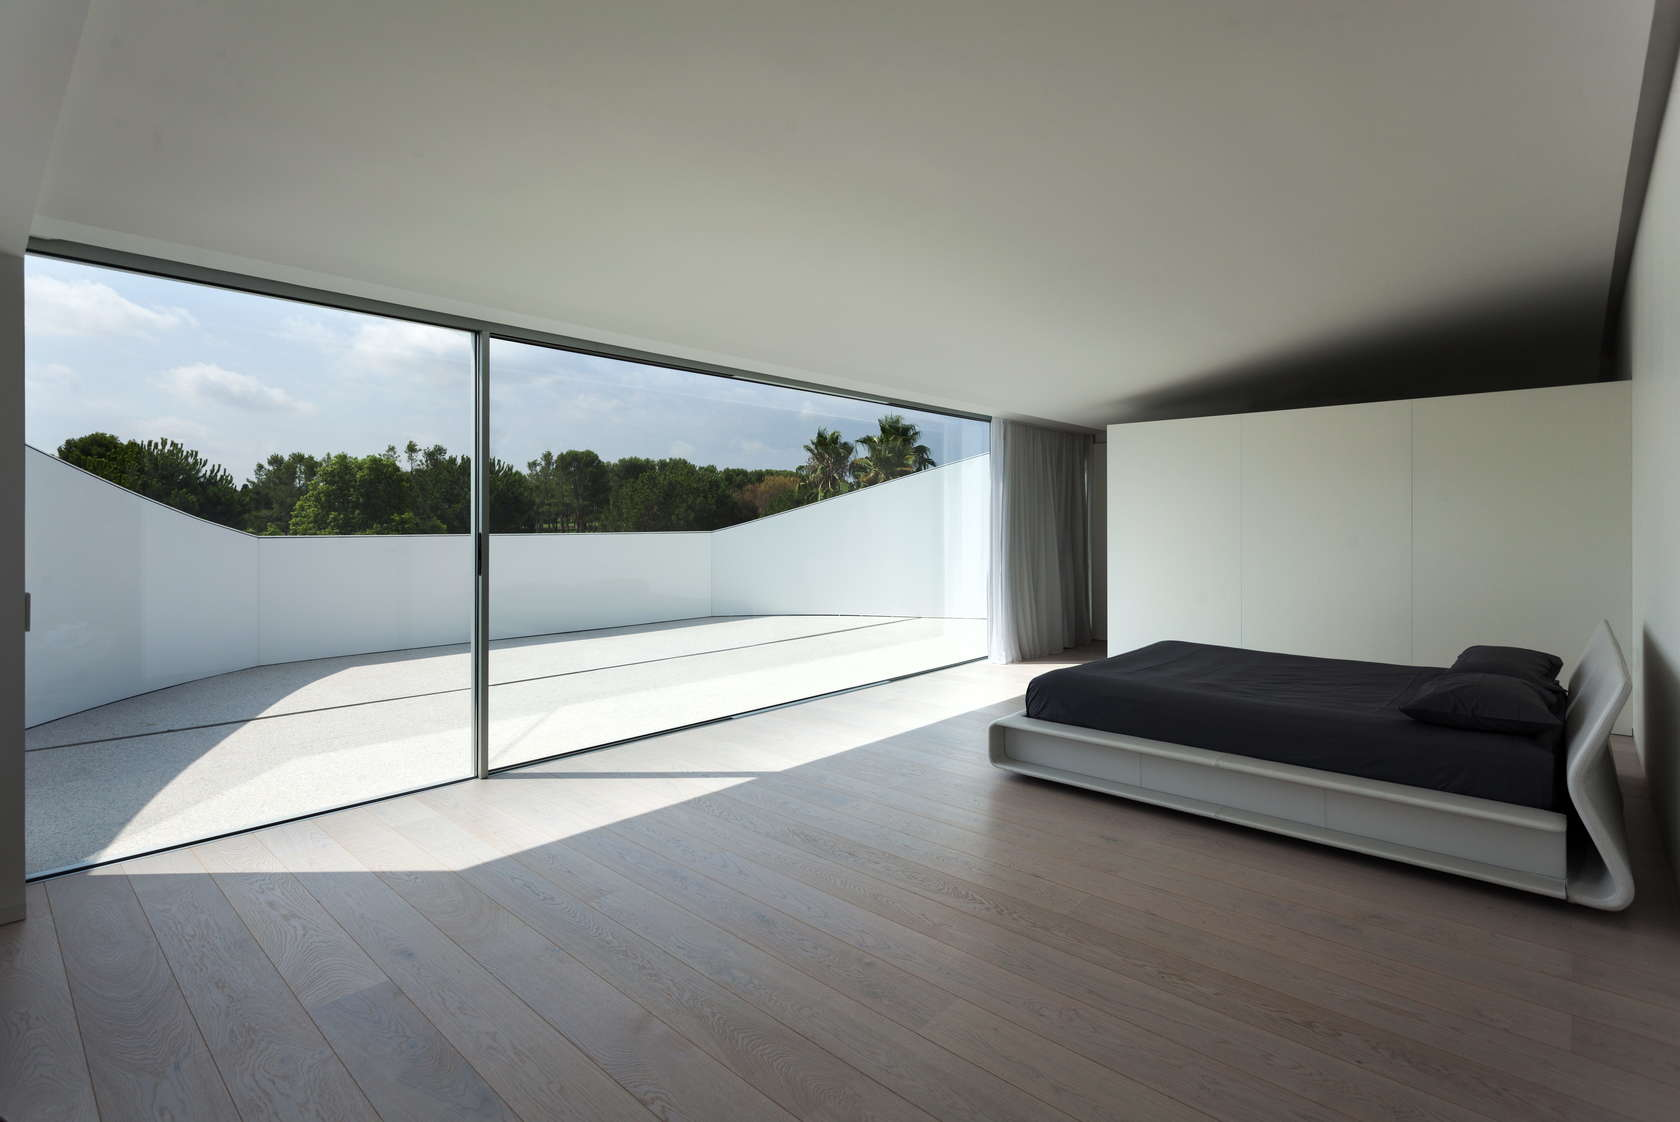 Moden Bedroom - Golf course views and a striking exterior make for a modern marvel